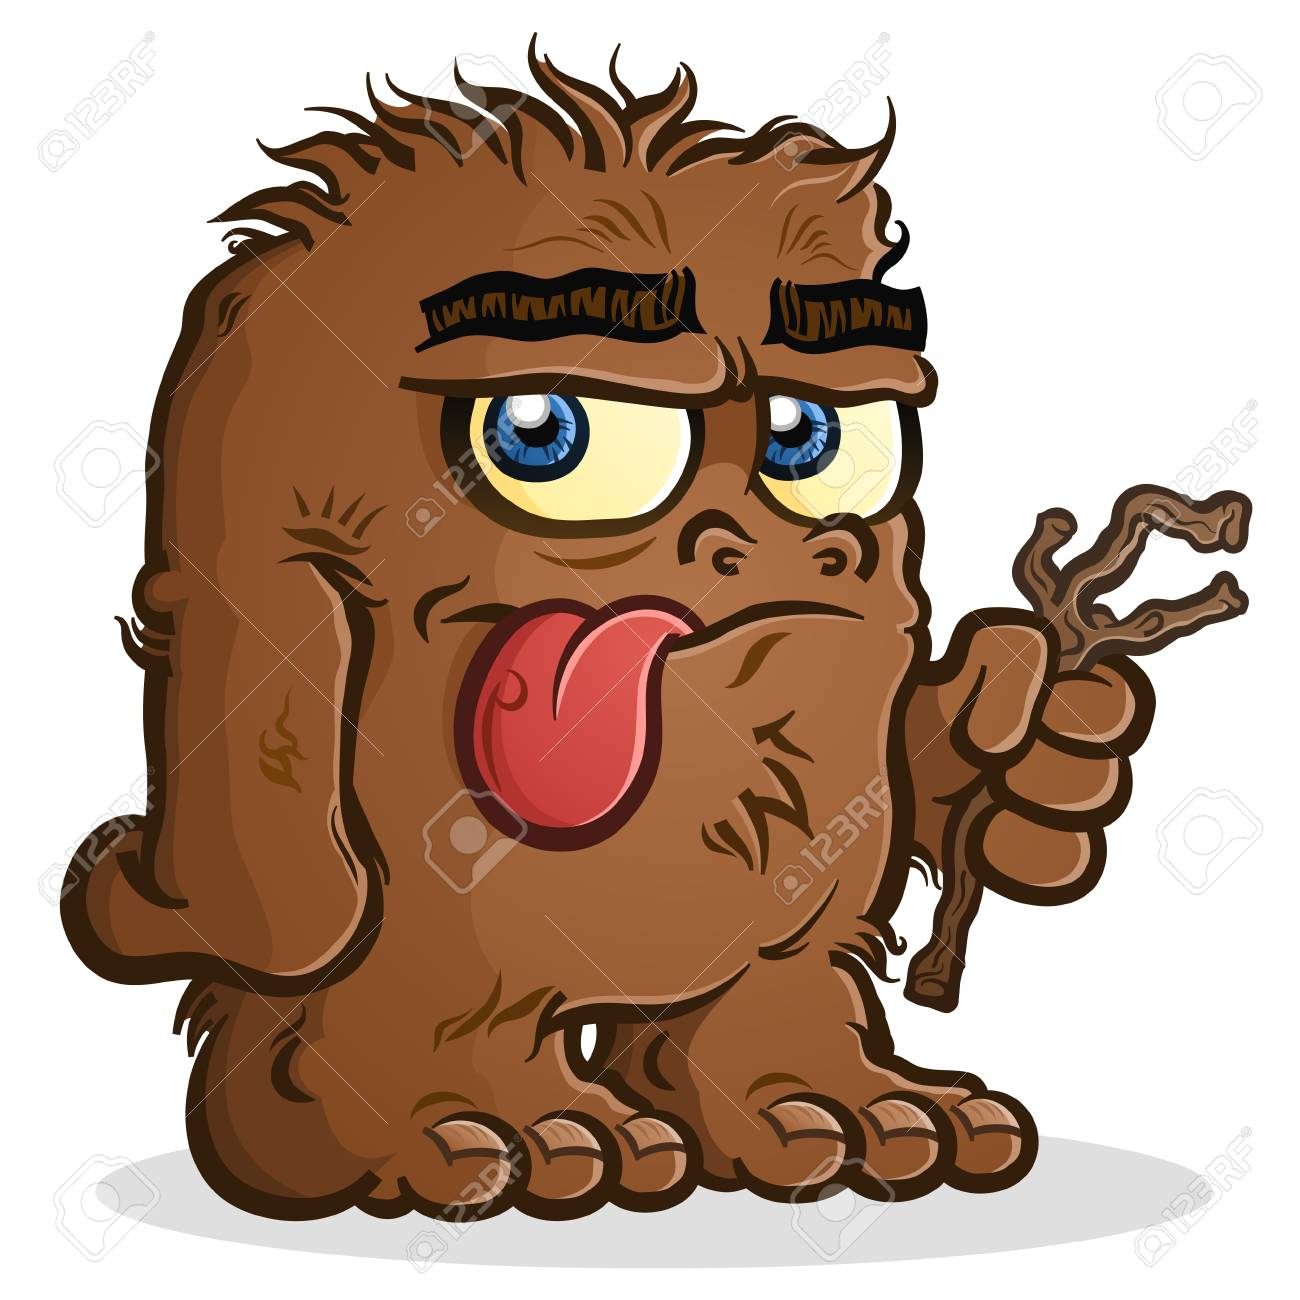 Bigfoot Sasquatch Cartoon Character With A Nonchalant Expression Royalty Free Cliparts Vectors And Stock Illustration Image 117260597